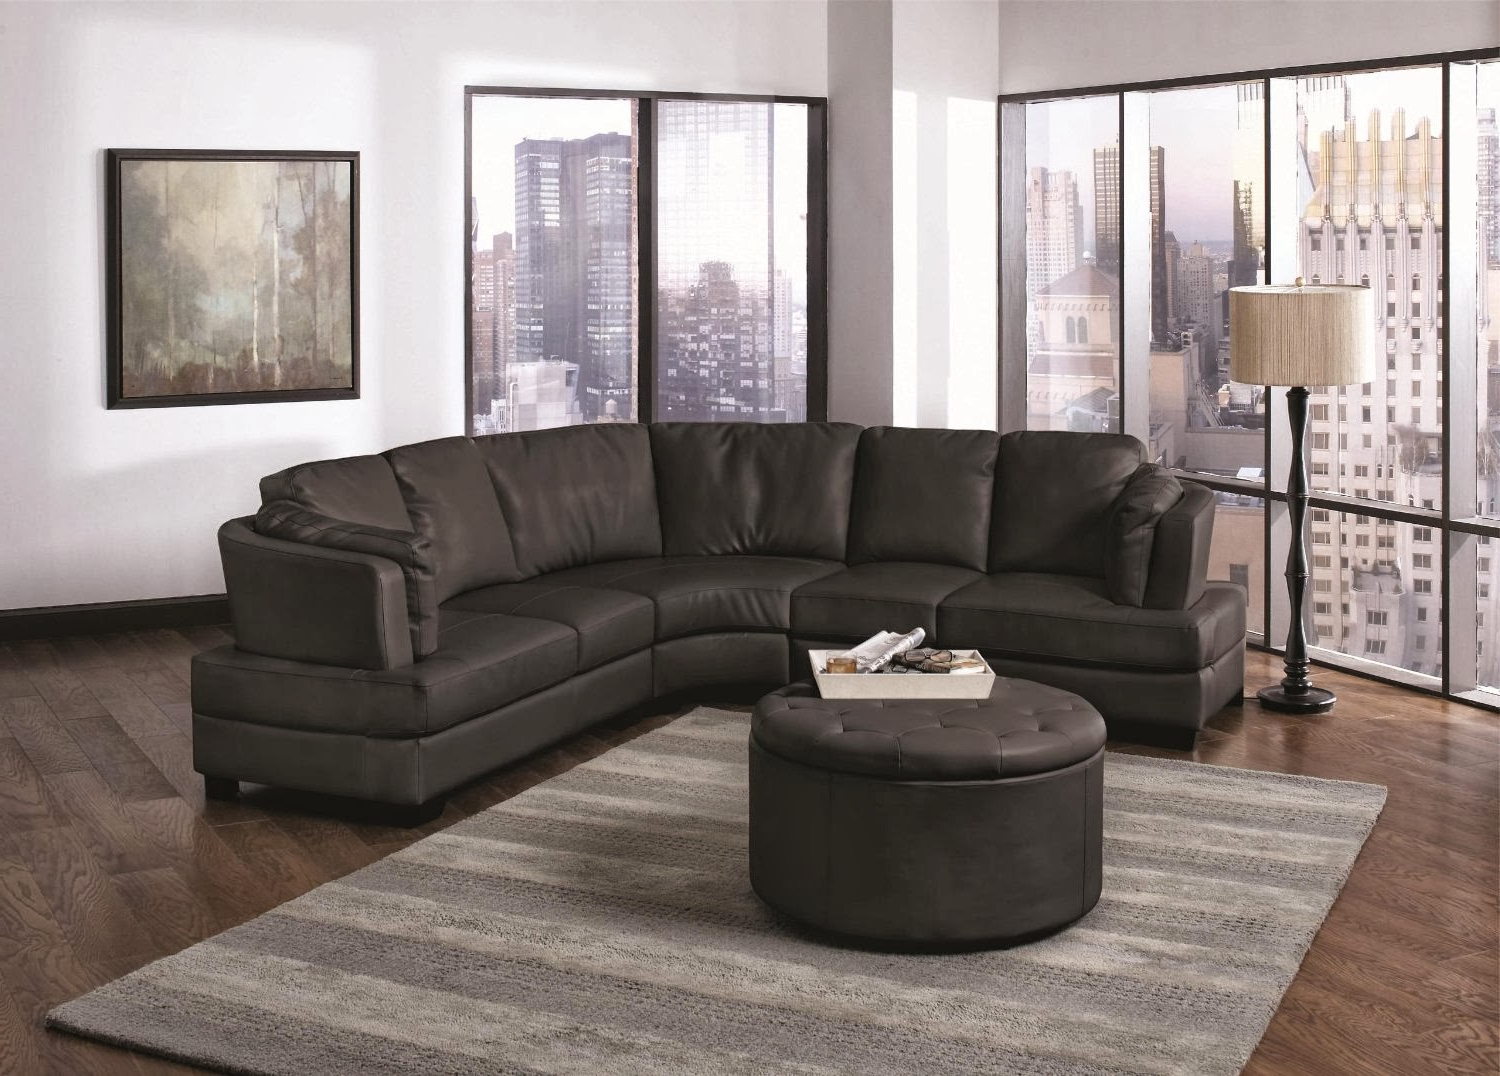 Marcus Oyster 6 Piece Sectionals With Power Headrest And Usb For Fashionable Design Your Own Reclining Sectional Sofa Online (View 17 of 20)